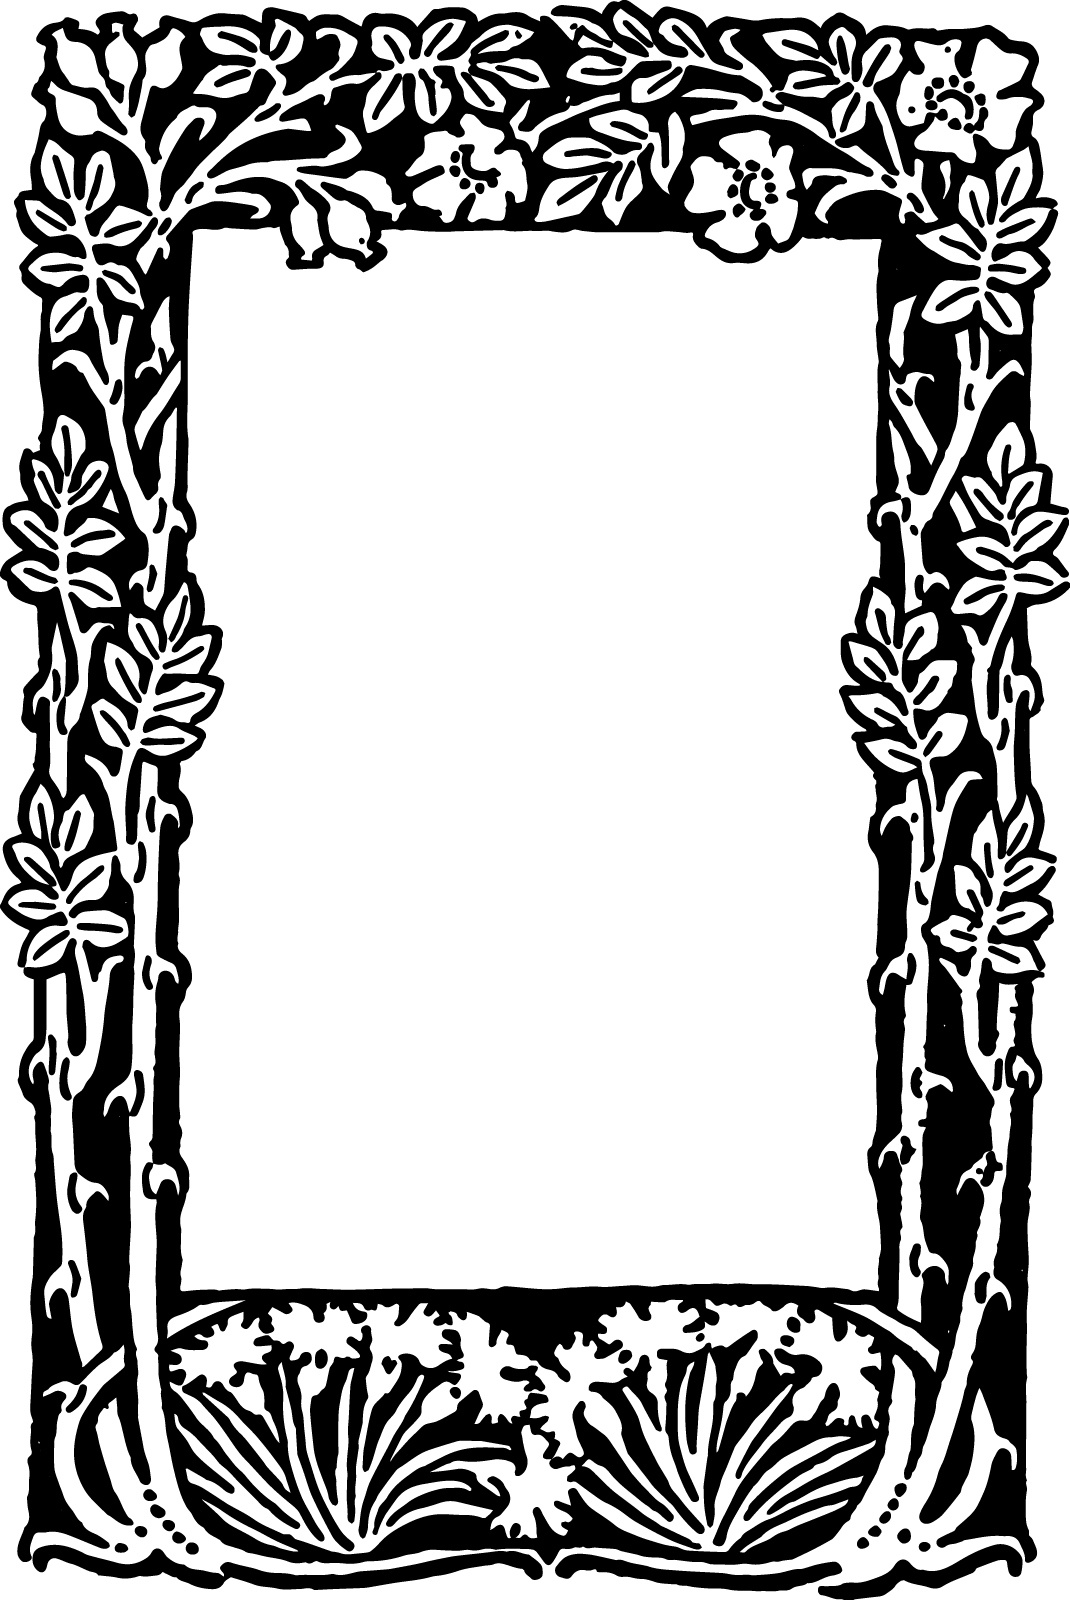 Free Free Printable Floral Borders And Frames, Download Free Clip - Free Printable Photo Frames